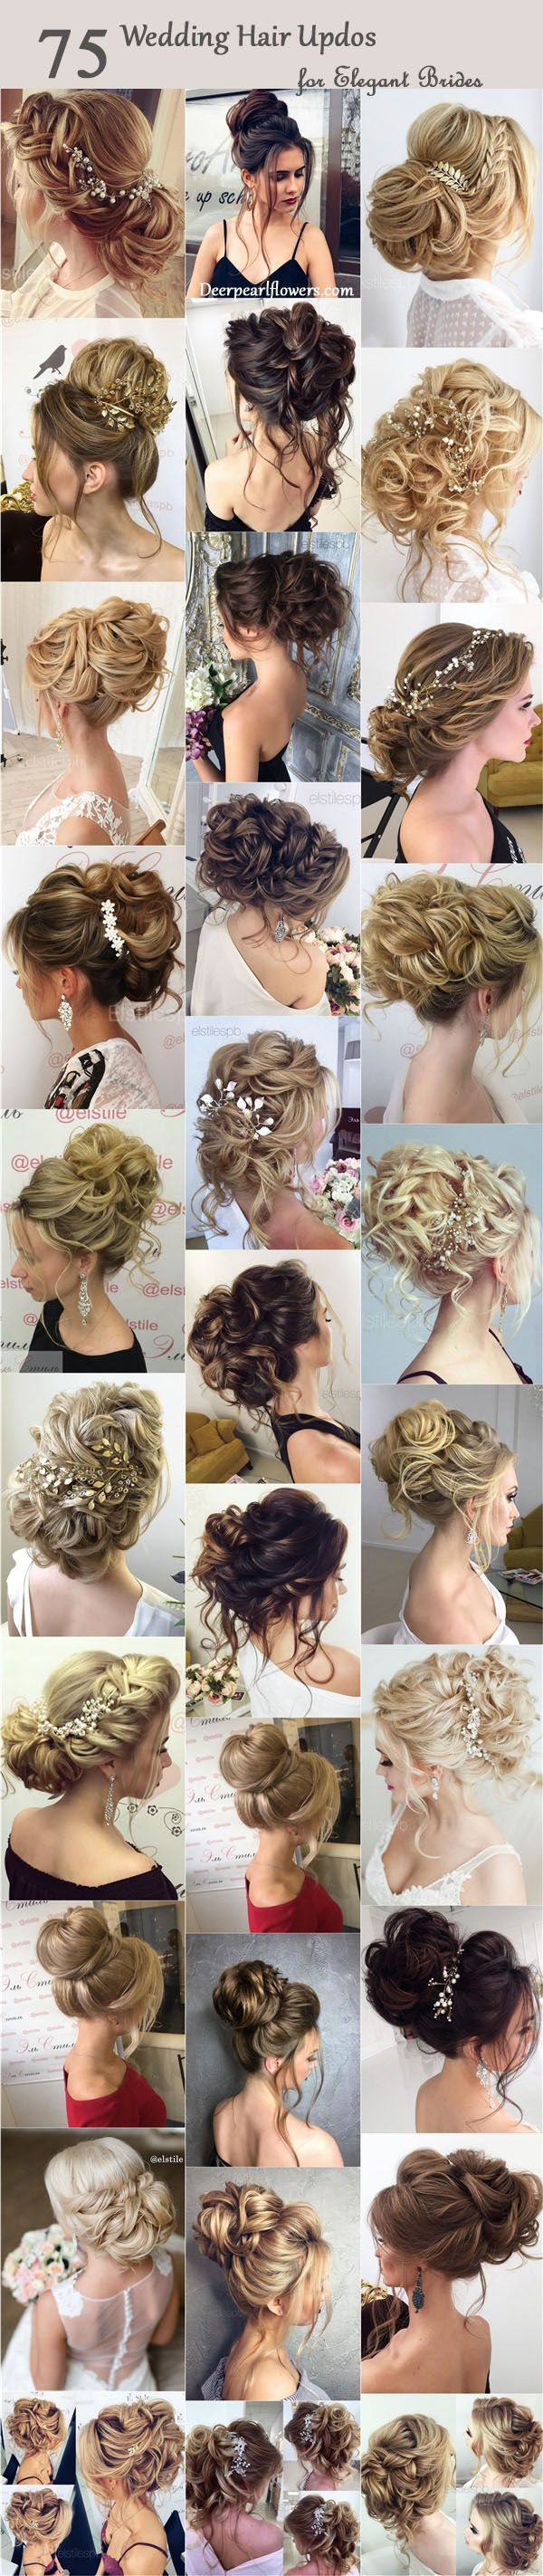 75 Chic Wedding Hair Updos for Elegant Brides #naturalhairupdo